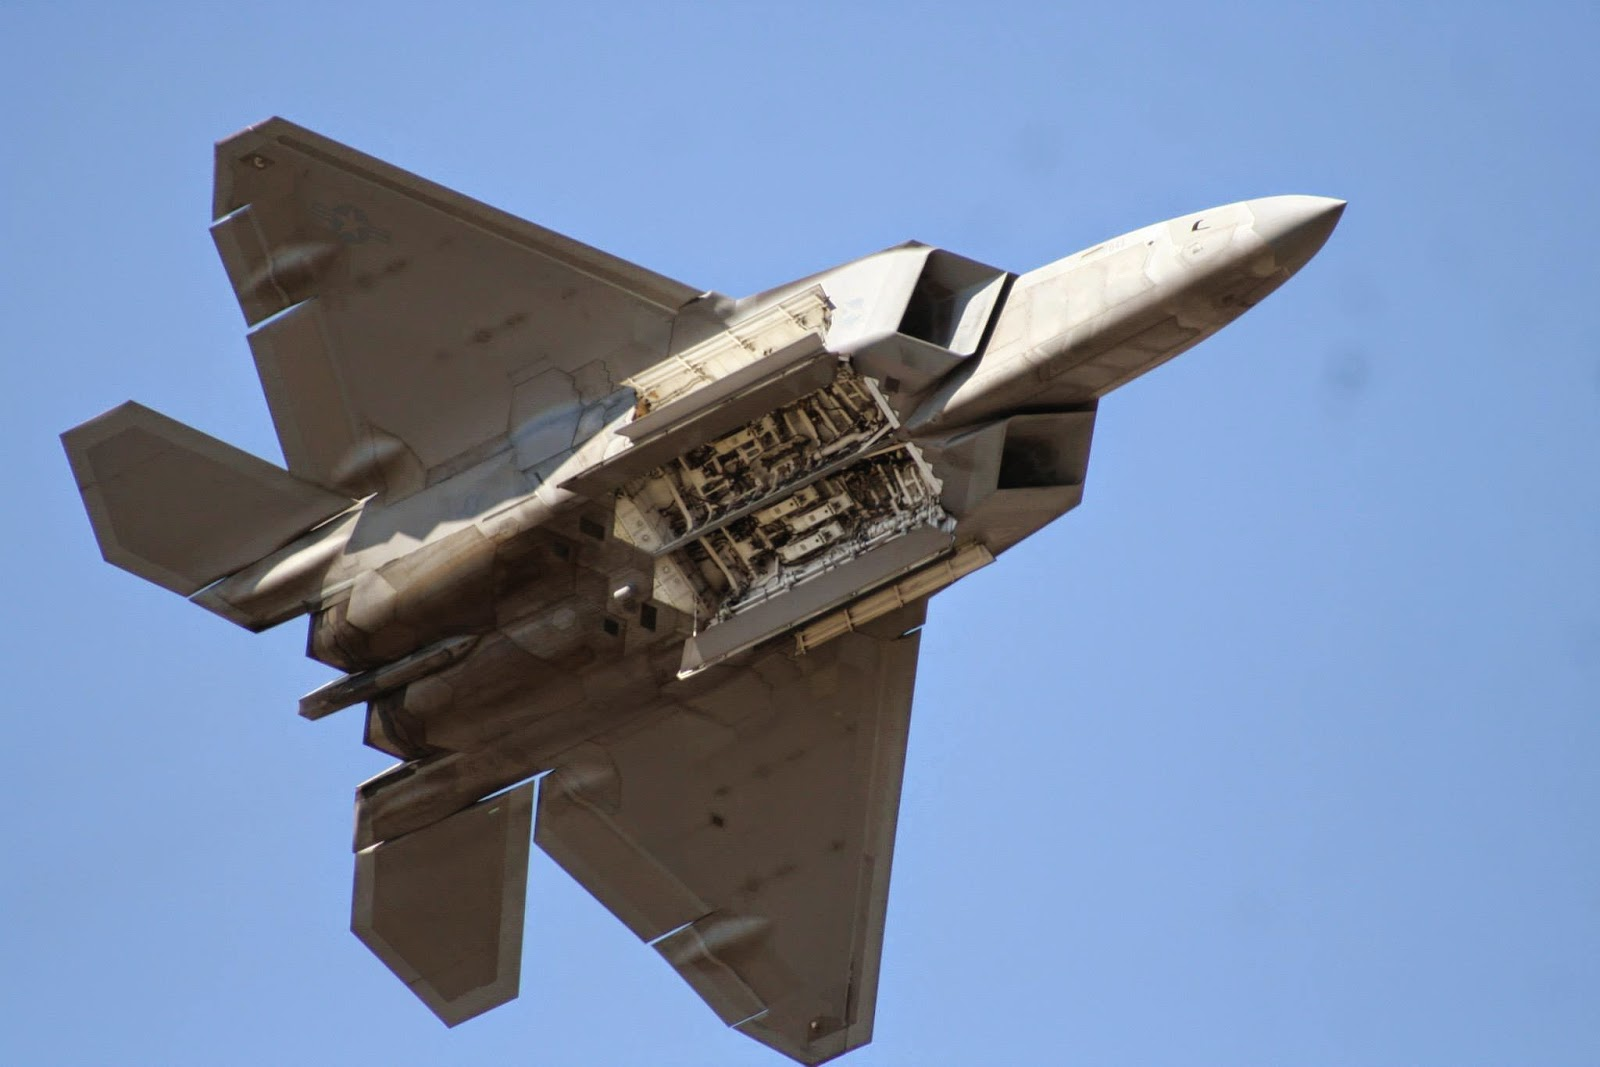 F-22 Raptor demonstration